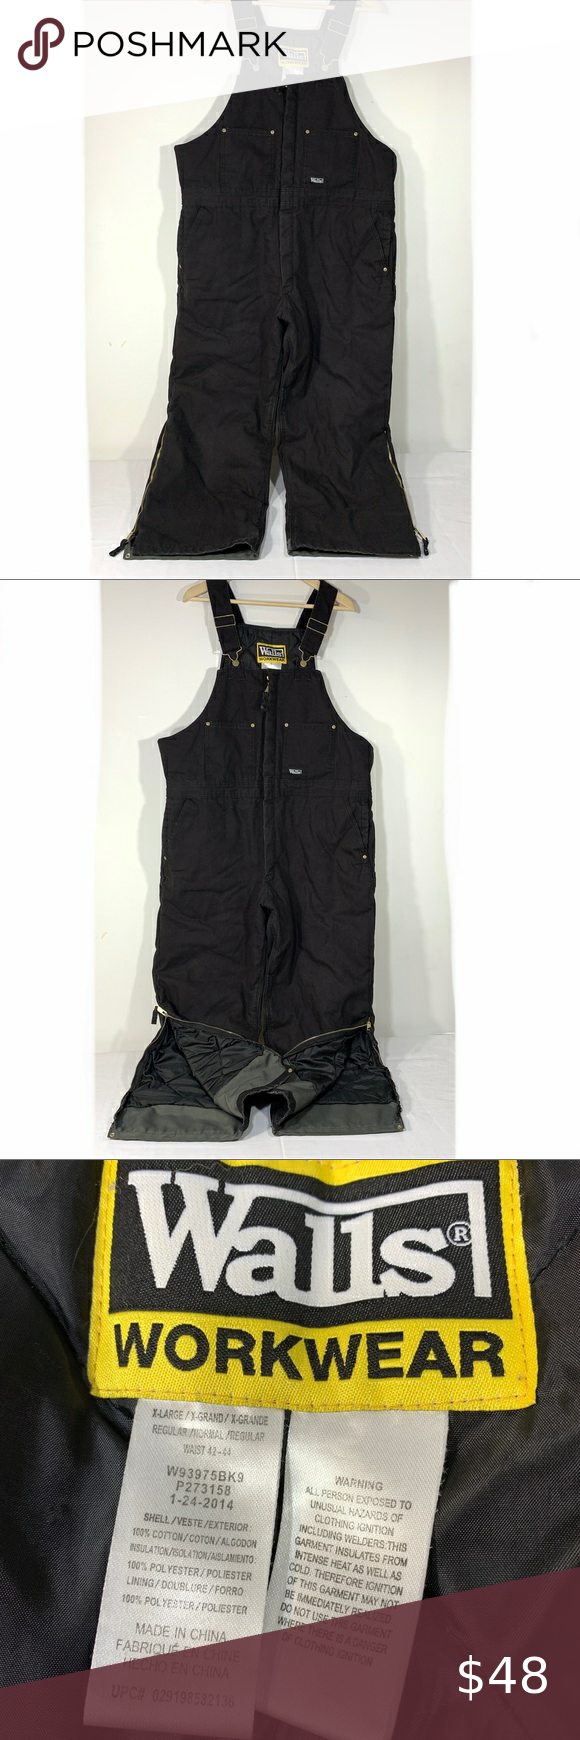 walls workwear insulated bib overalls xl reg 42 44 in 2020 on walls coveralls for men insulated id=49314